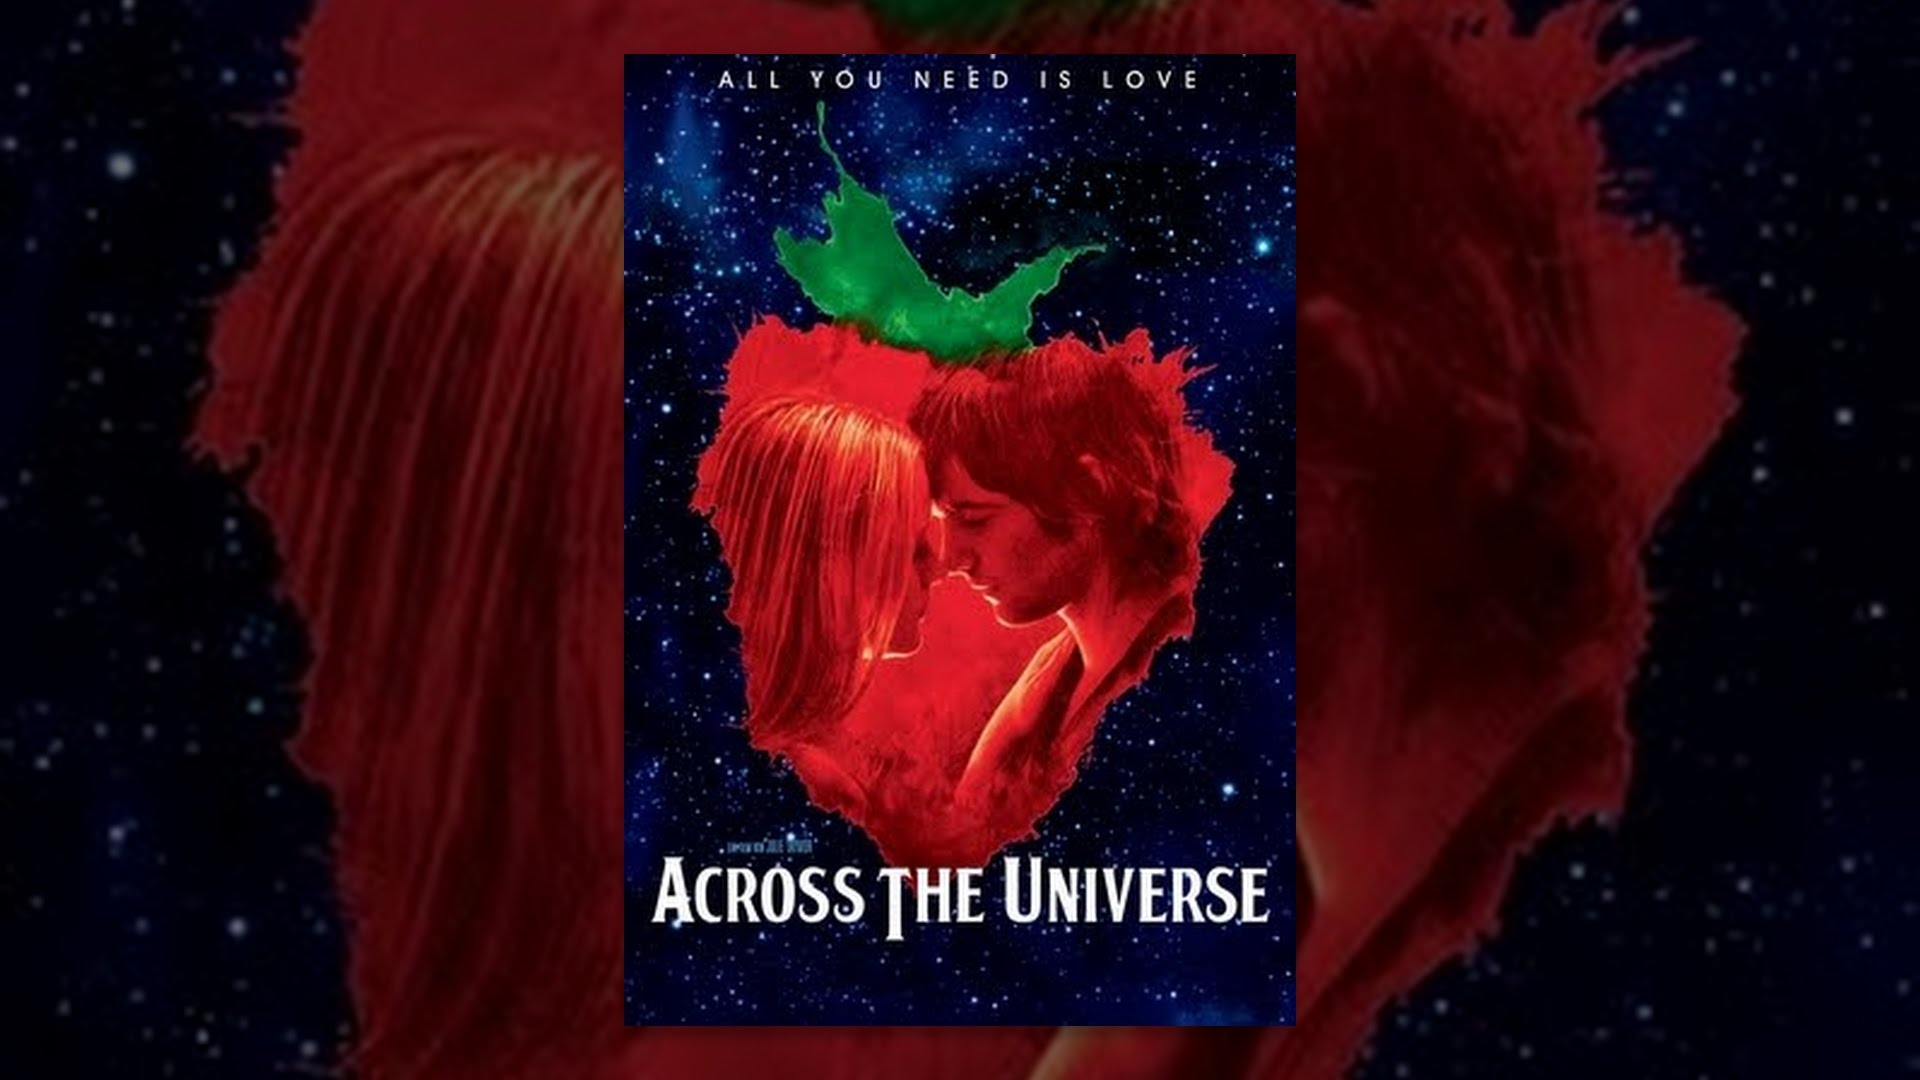 across the universe Across the universe is a musical romantic drama film directed by julie taymor, produced by revolution studios, and distributed by columbia pictures it was released in the united states on october 12, 2007.